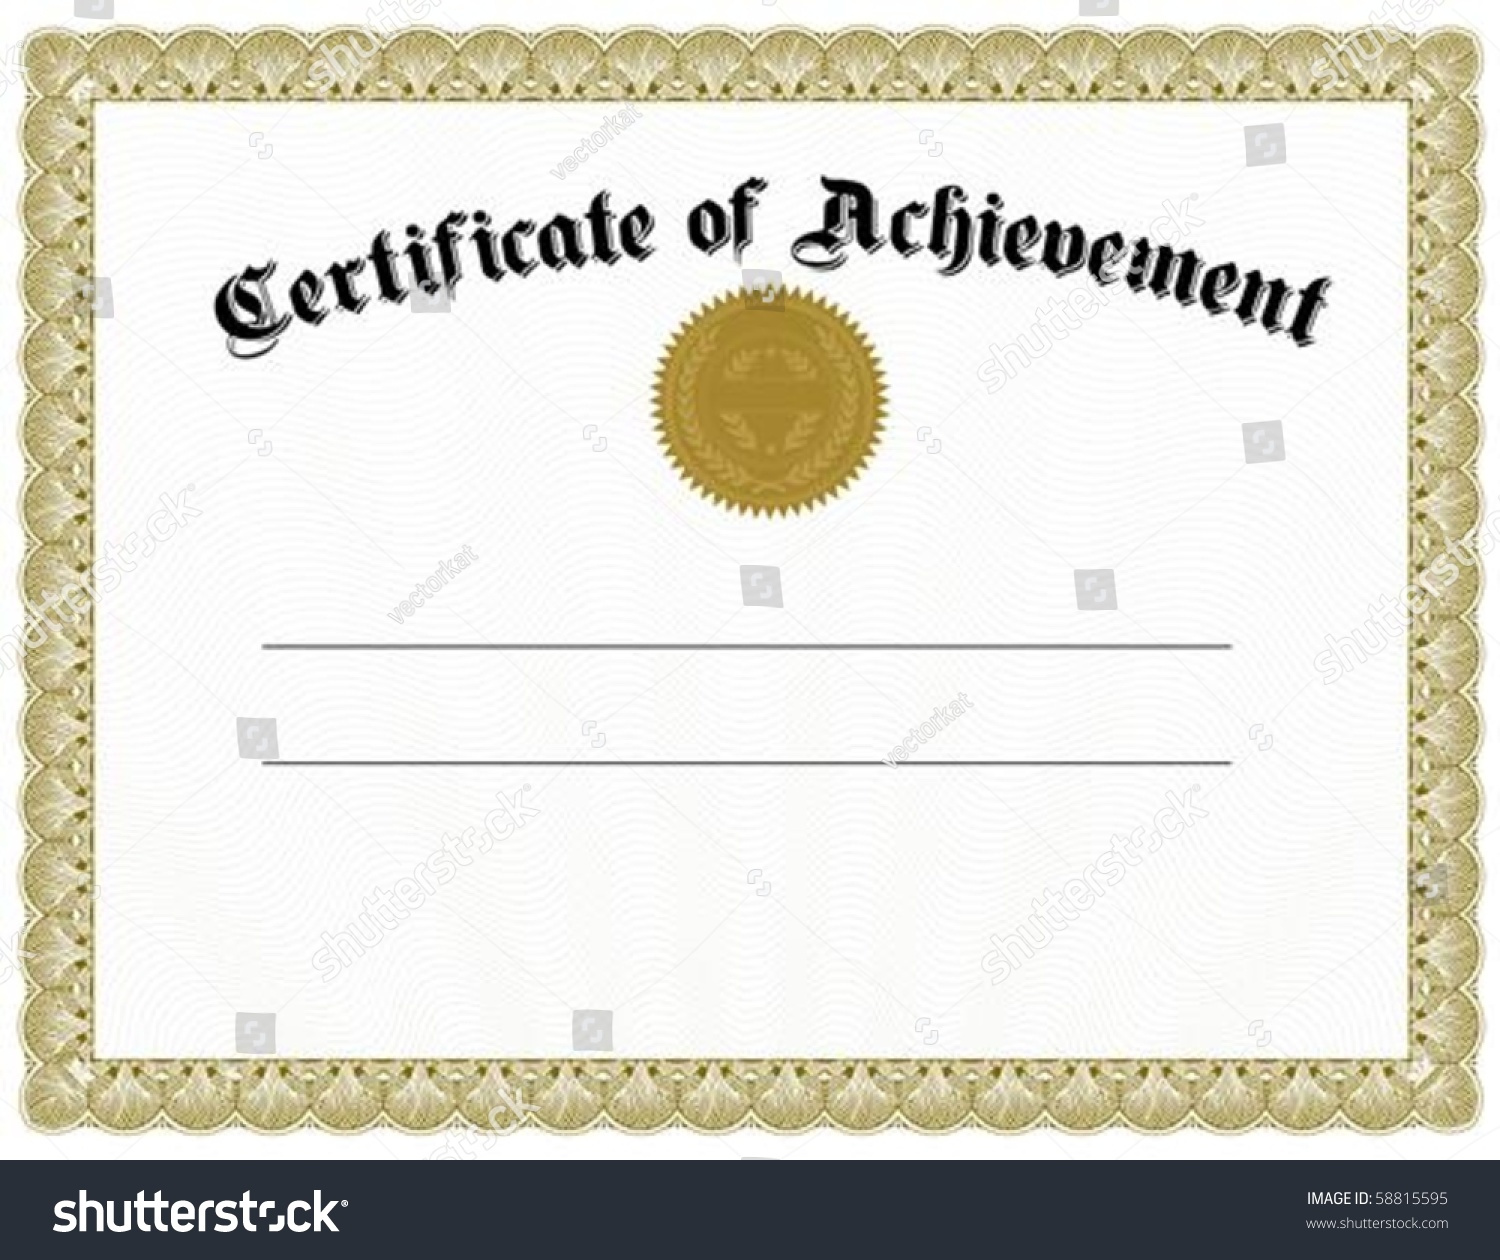 vector certificate template gold seal easy stock vector  vector certificate template and gold seal easy to edit and scale